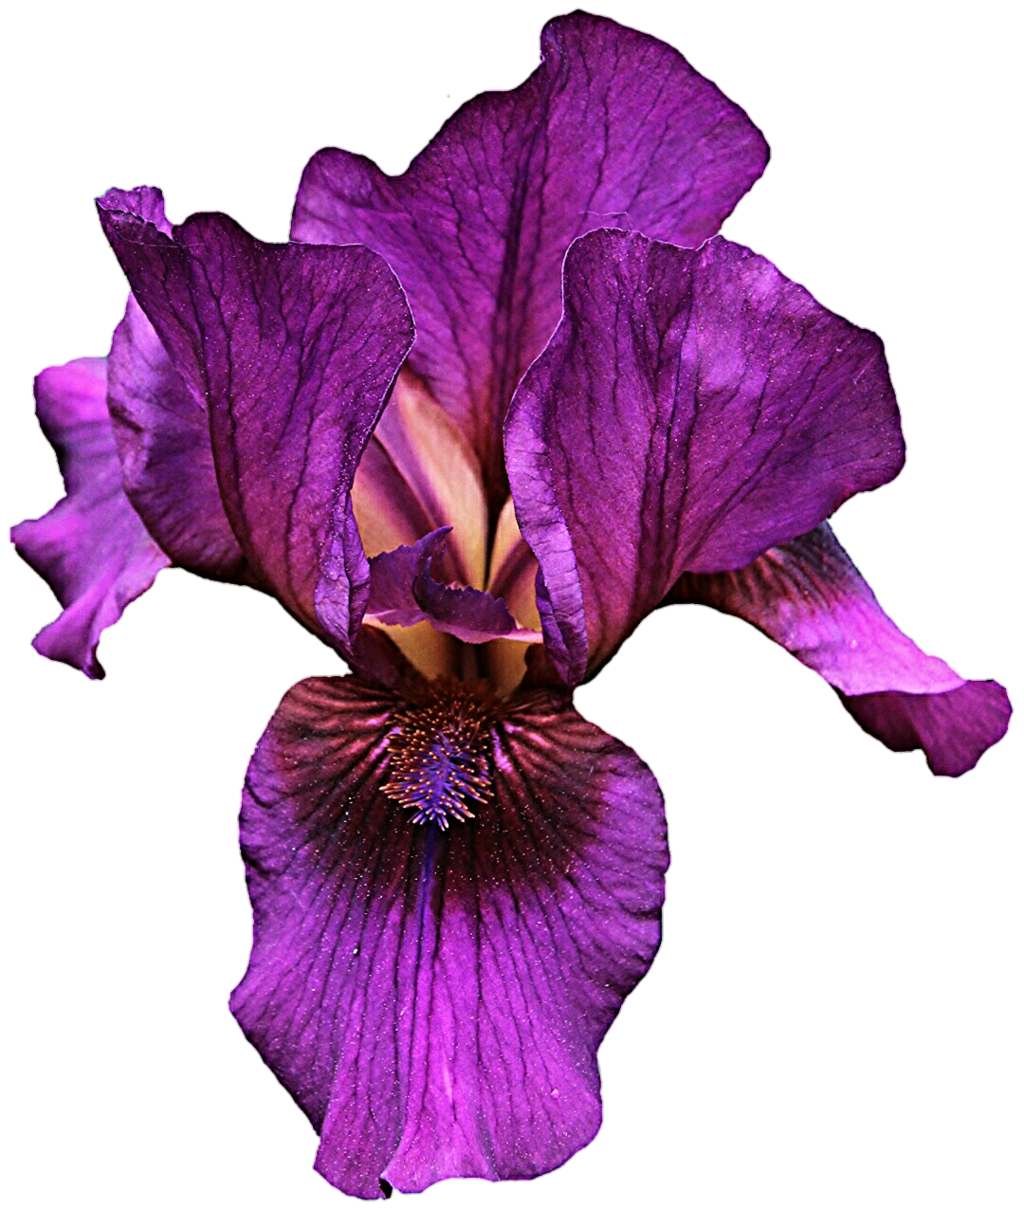 Hd transparent images pluspng. Iris flower png